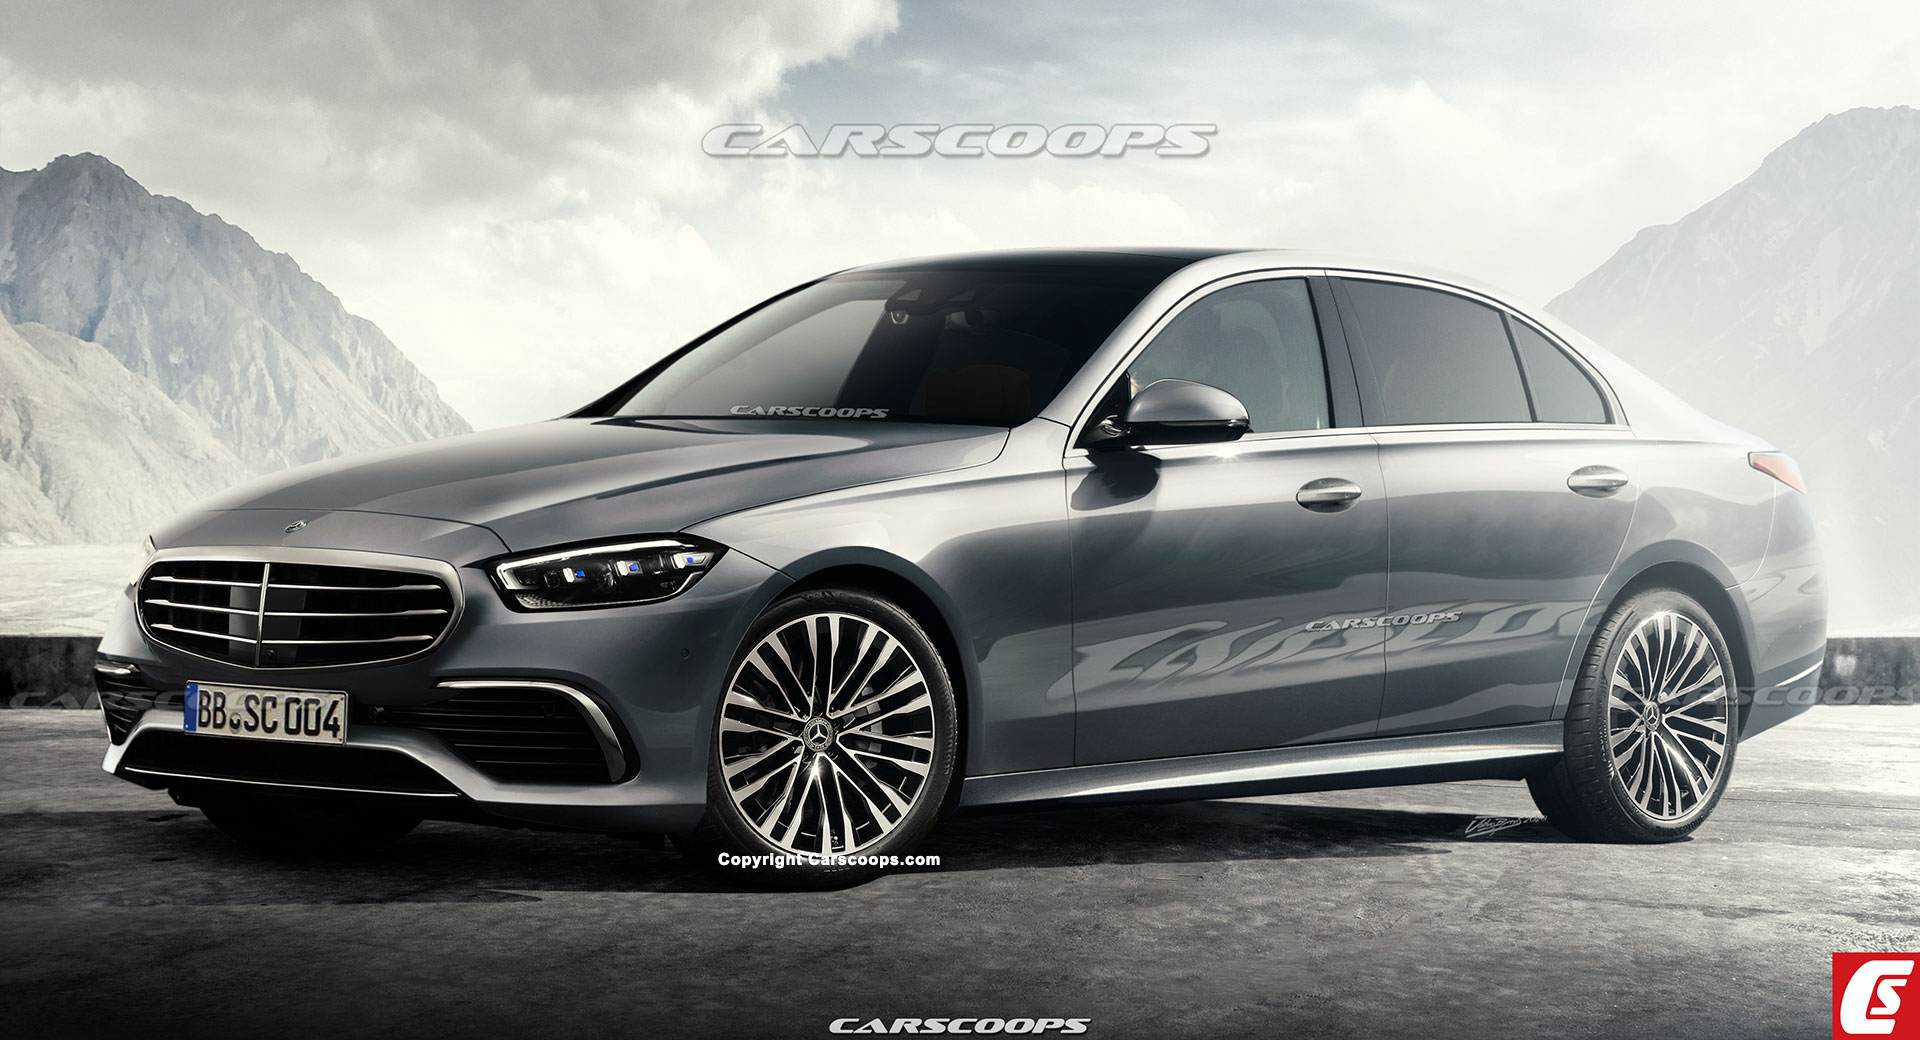 5 Mercedes-Benz C-Class: Everything We Know About The Compact S